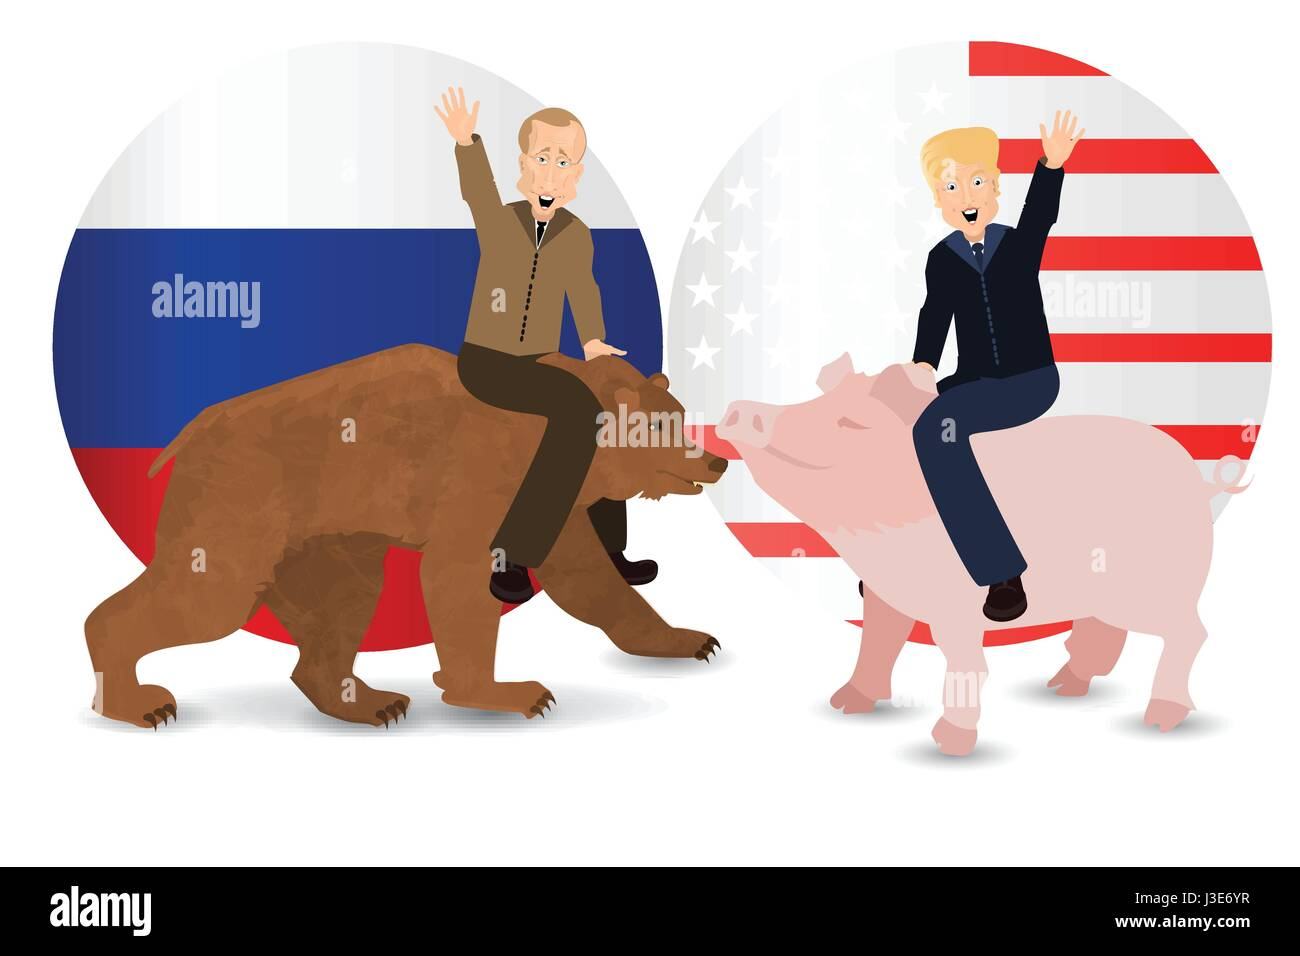 Donald Trump And Vladimir Putin Are Riding A Pig And A Bear Against Stock Vector Image Art Alamy